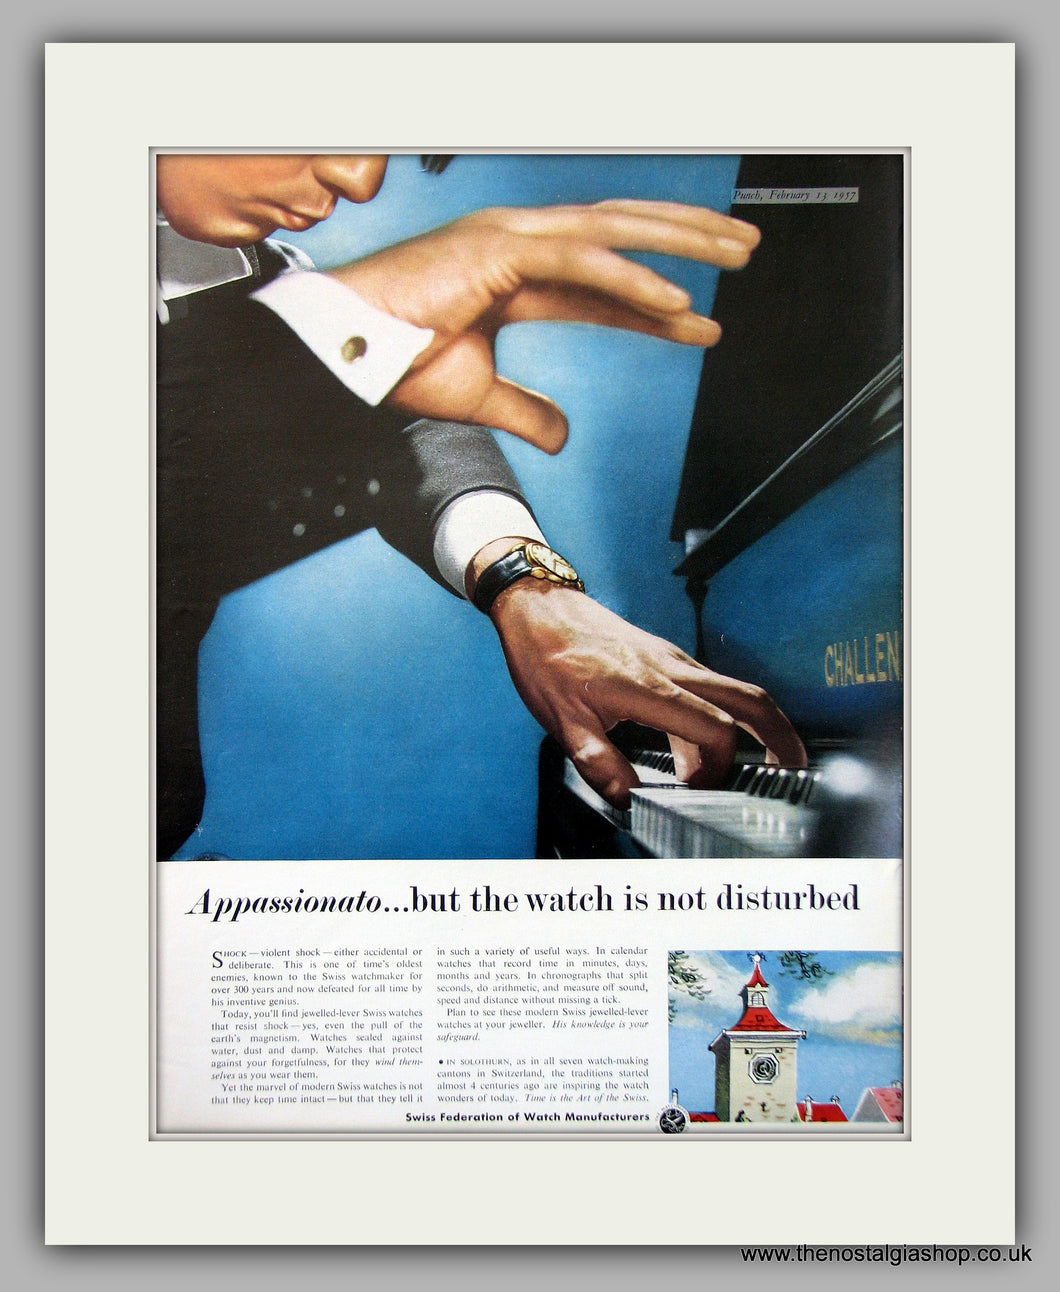 Swiss Watches Federation Of Watch Manufacturers Set Of 2 Original Adverts 1957 (ref AD6938)